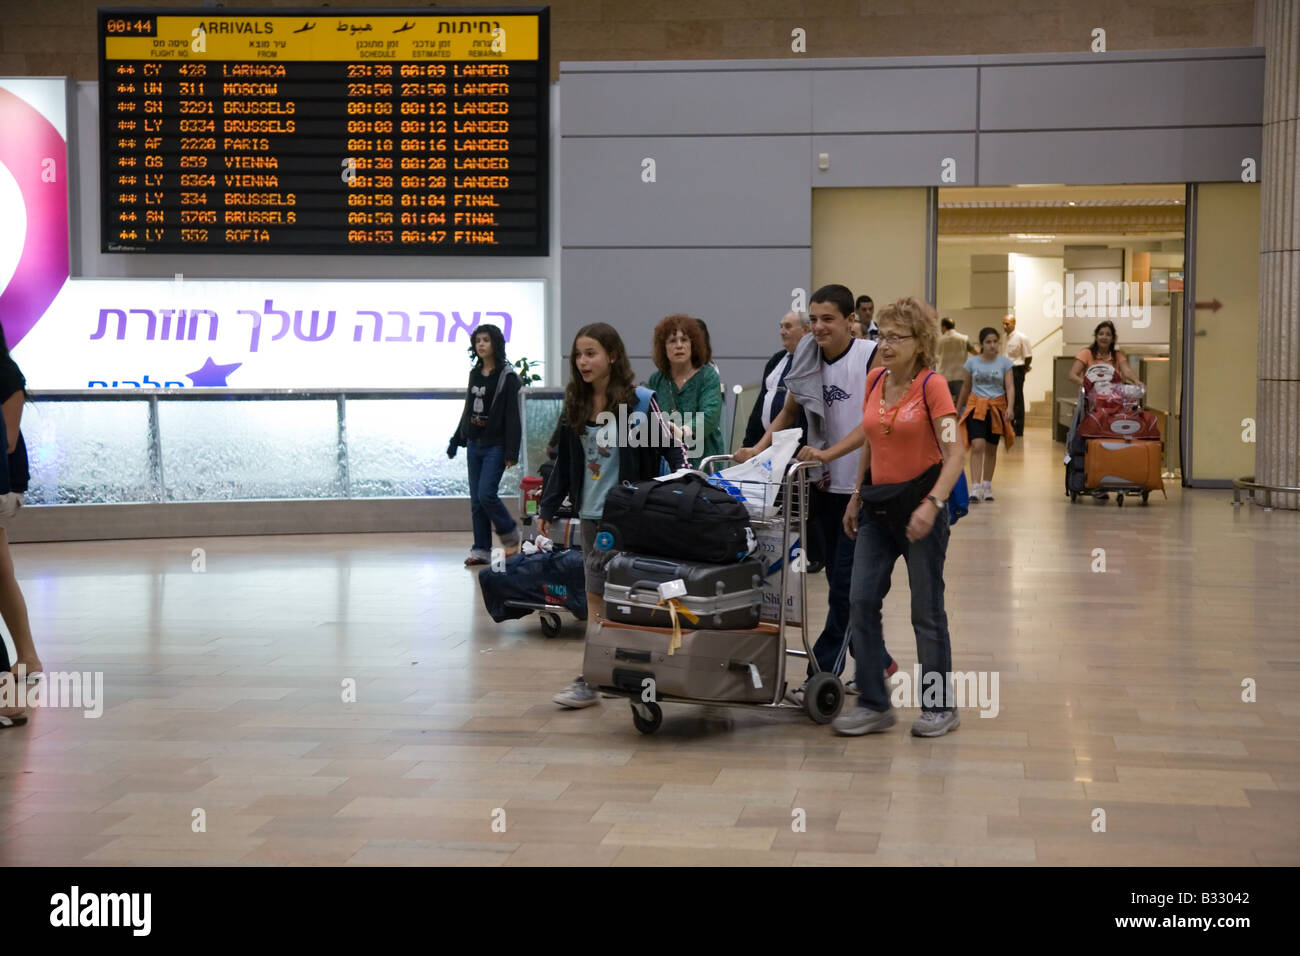 Photo Of Arrival Hall At Tel Aviv Ben Gurion International Airport Stock Photo Alamy